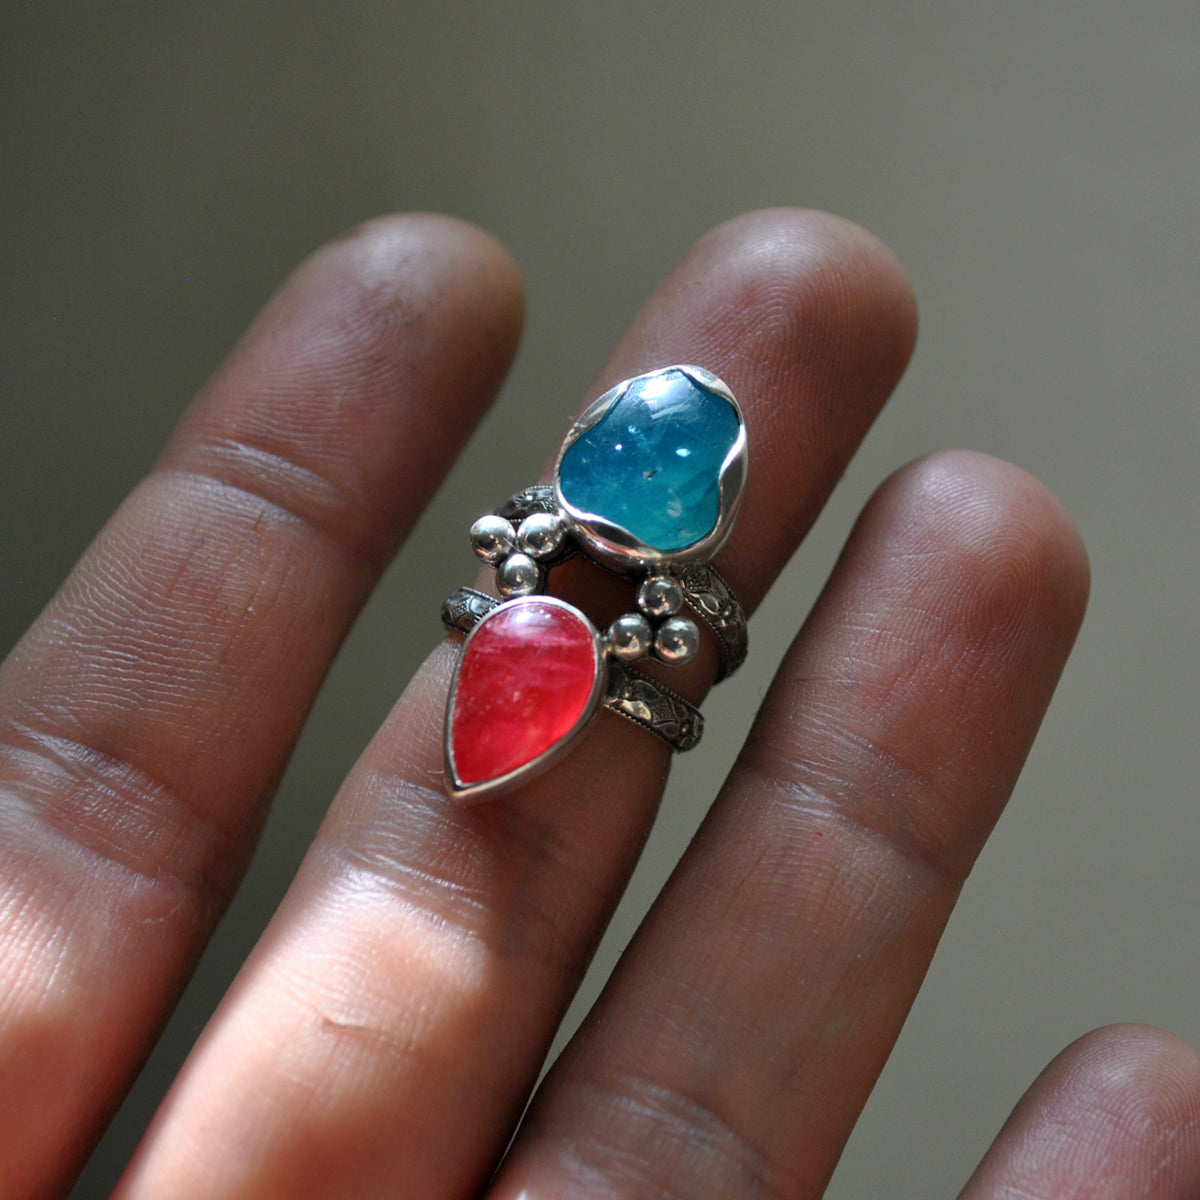 Size 4, Jewels of Fire & Water, Gem Rhodonite and Gem Apatite, Sterling and Fine Silver